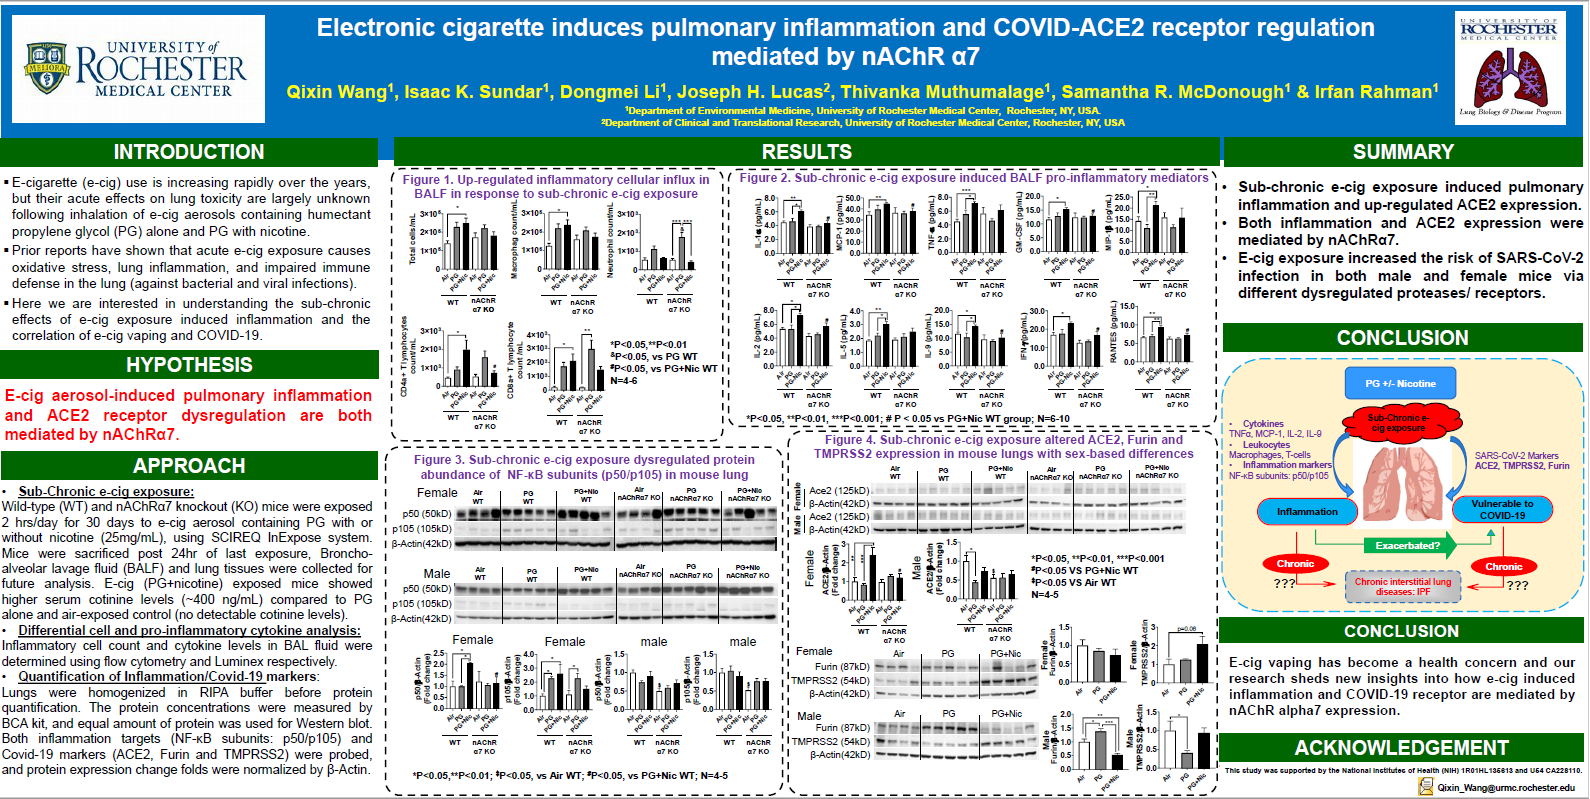 Electronic cigarette induces pulmonary inflammation and COVID-ACE2 receptor regulation mediated by nAChR α7